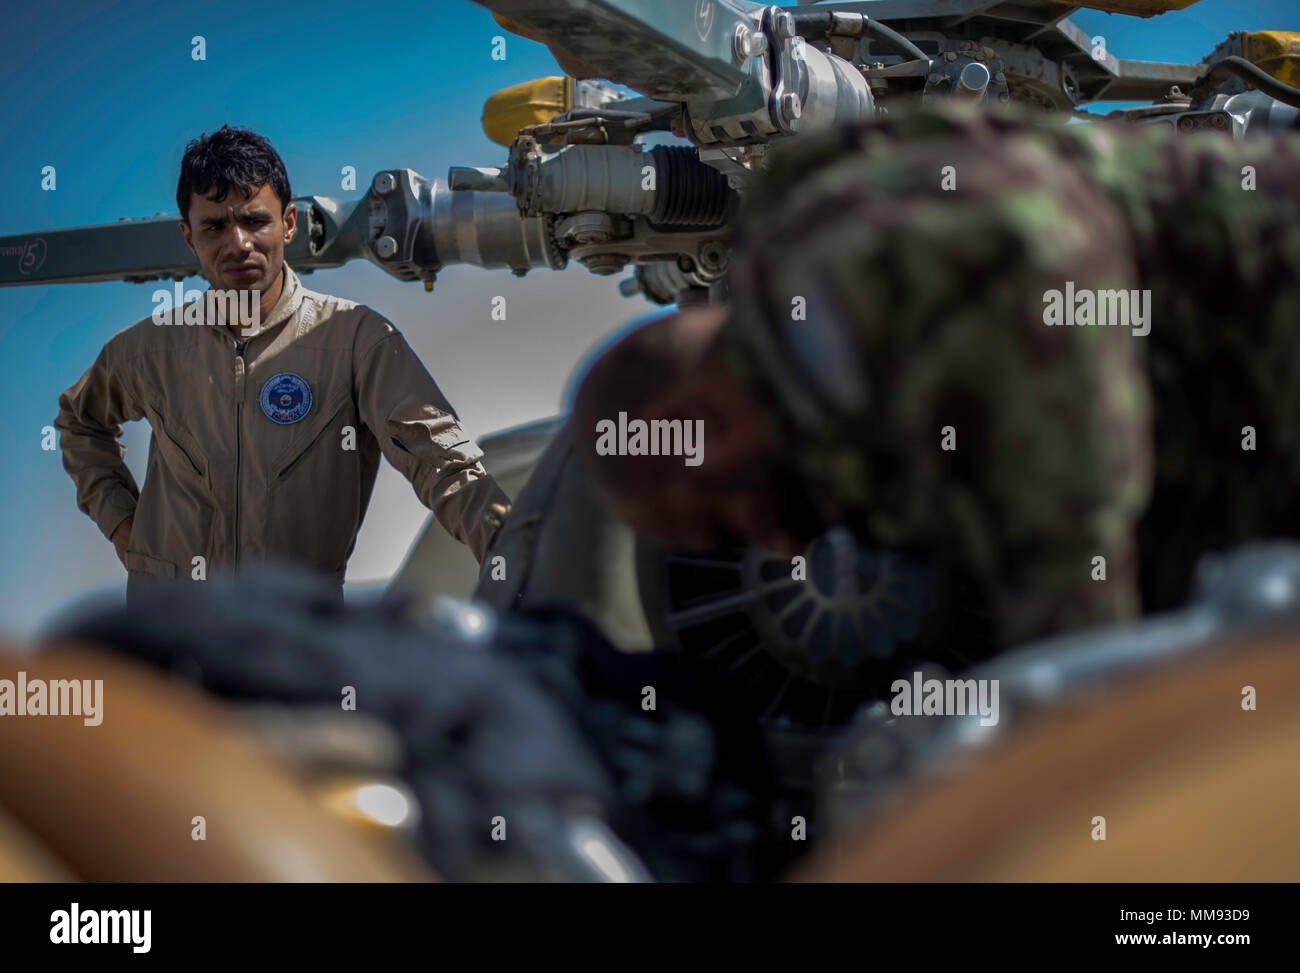 Afghan Air Force personnel conduct maintenance on an Mi-17 before the arrival of two UH-60s at Kandahar Air Field, Afghanistan, on Sept. 18, 2017. The UH-60s are the first to be delivered to the AAF under the recapitalization program. The plan to recapitalize the AAF and increase its size will provide firepower and mobility enabling the Afghan National Defense and Security Forces to break the stalemate with insurgents. (U.S. Air Force photo by Staff Sgt. Trevor T. McBride) - Stock Image